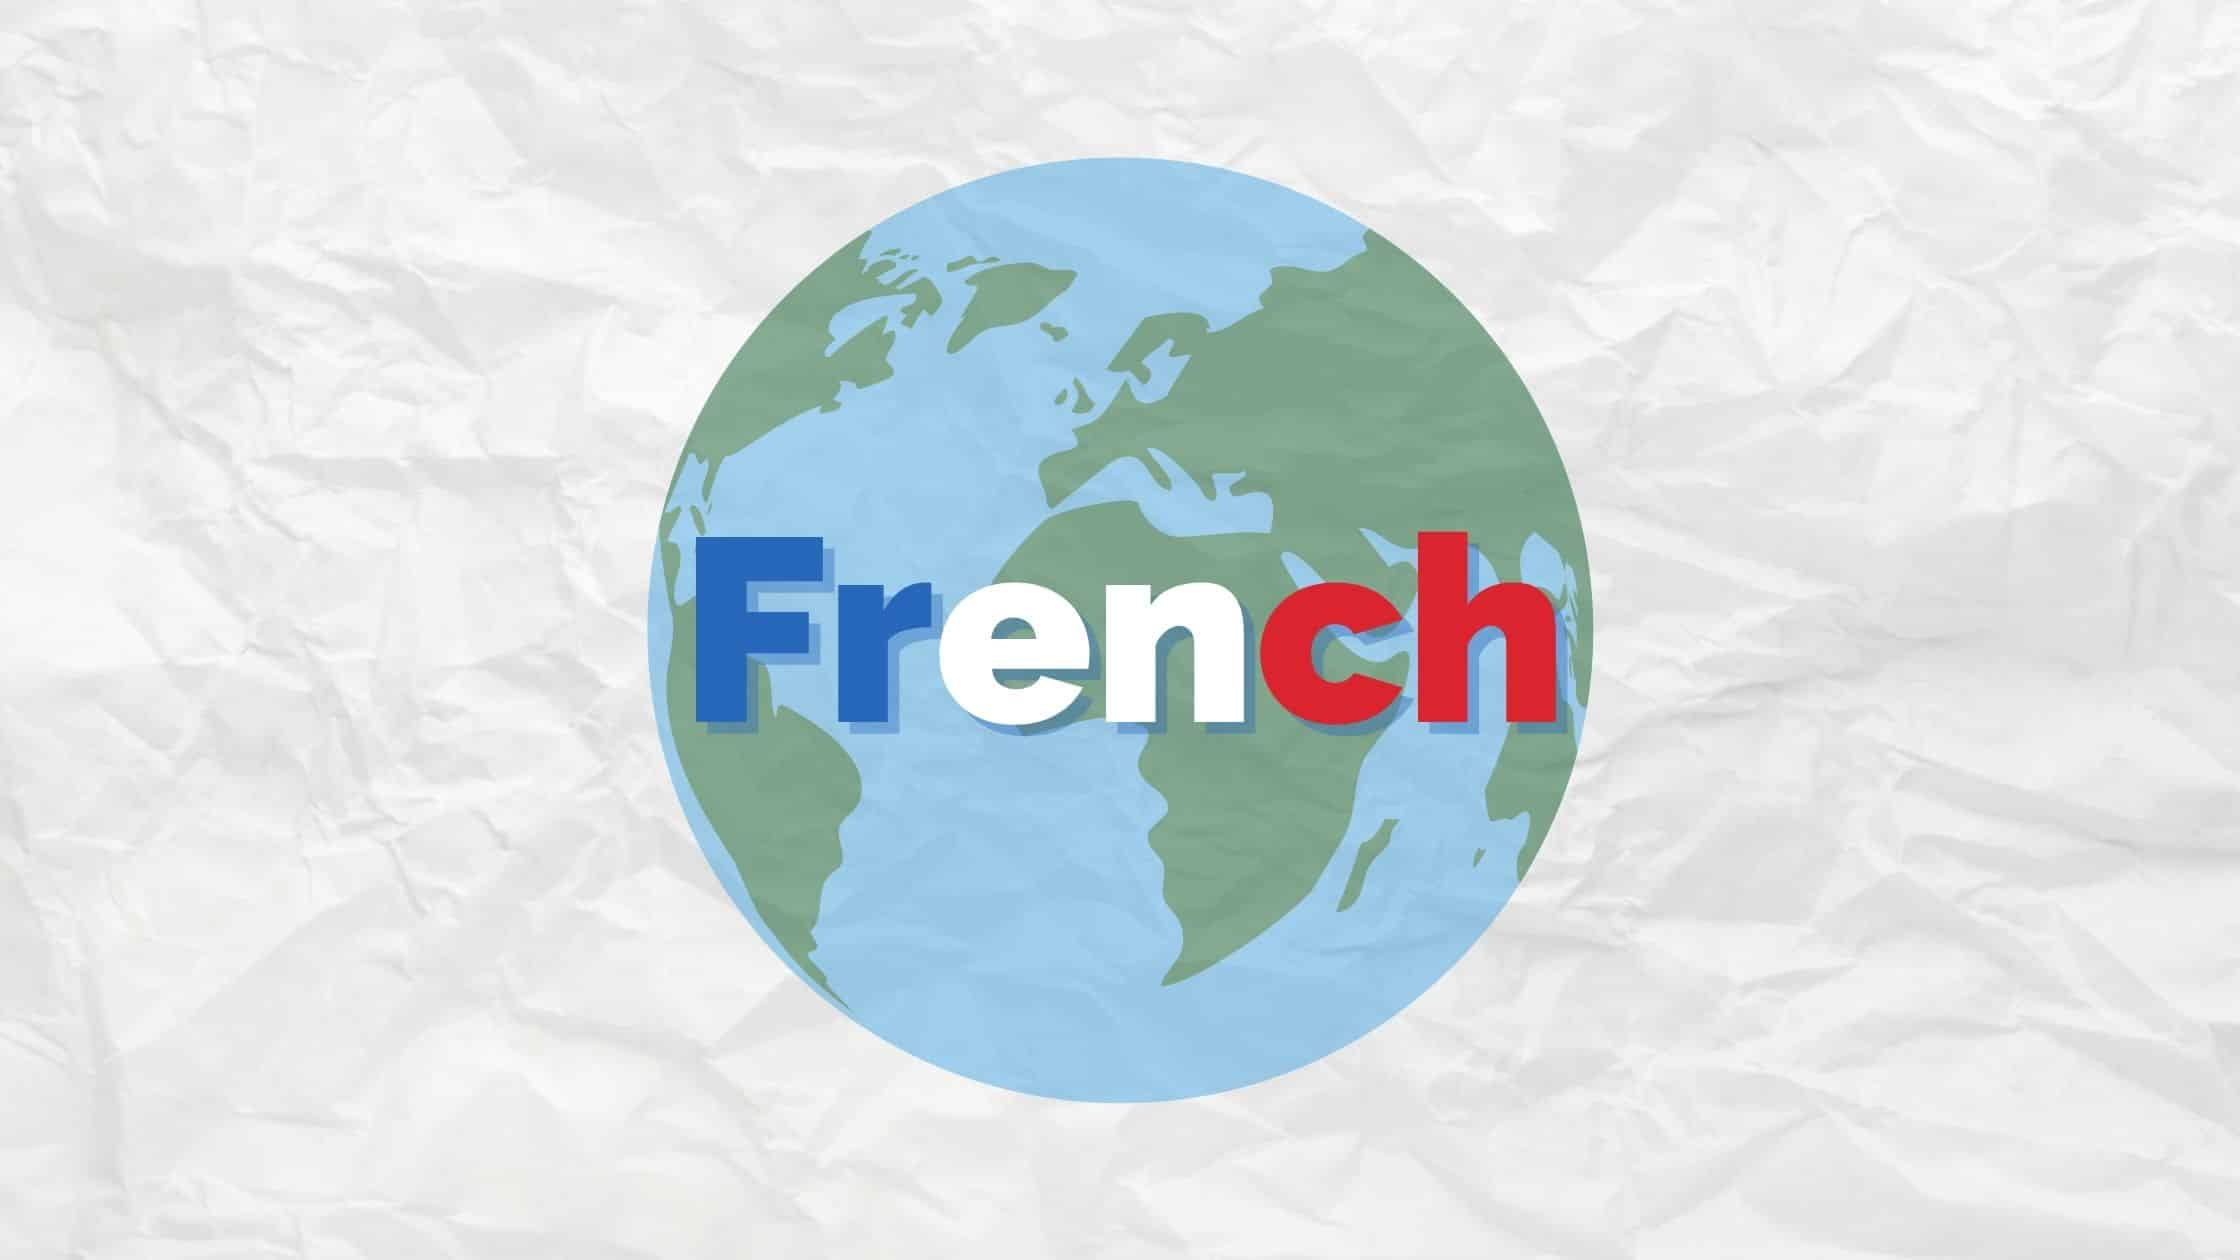 How many people speak French, and where is French spoken?